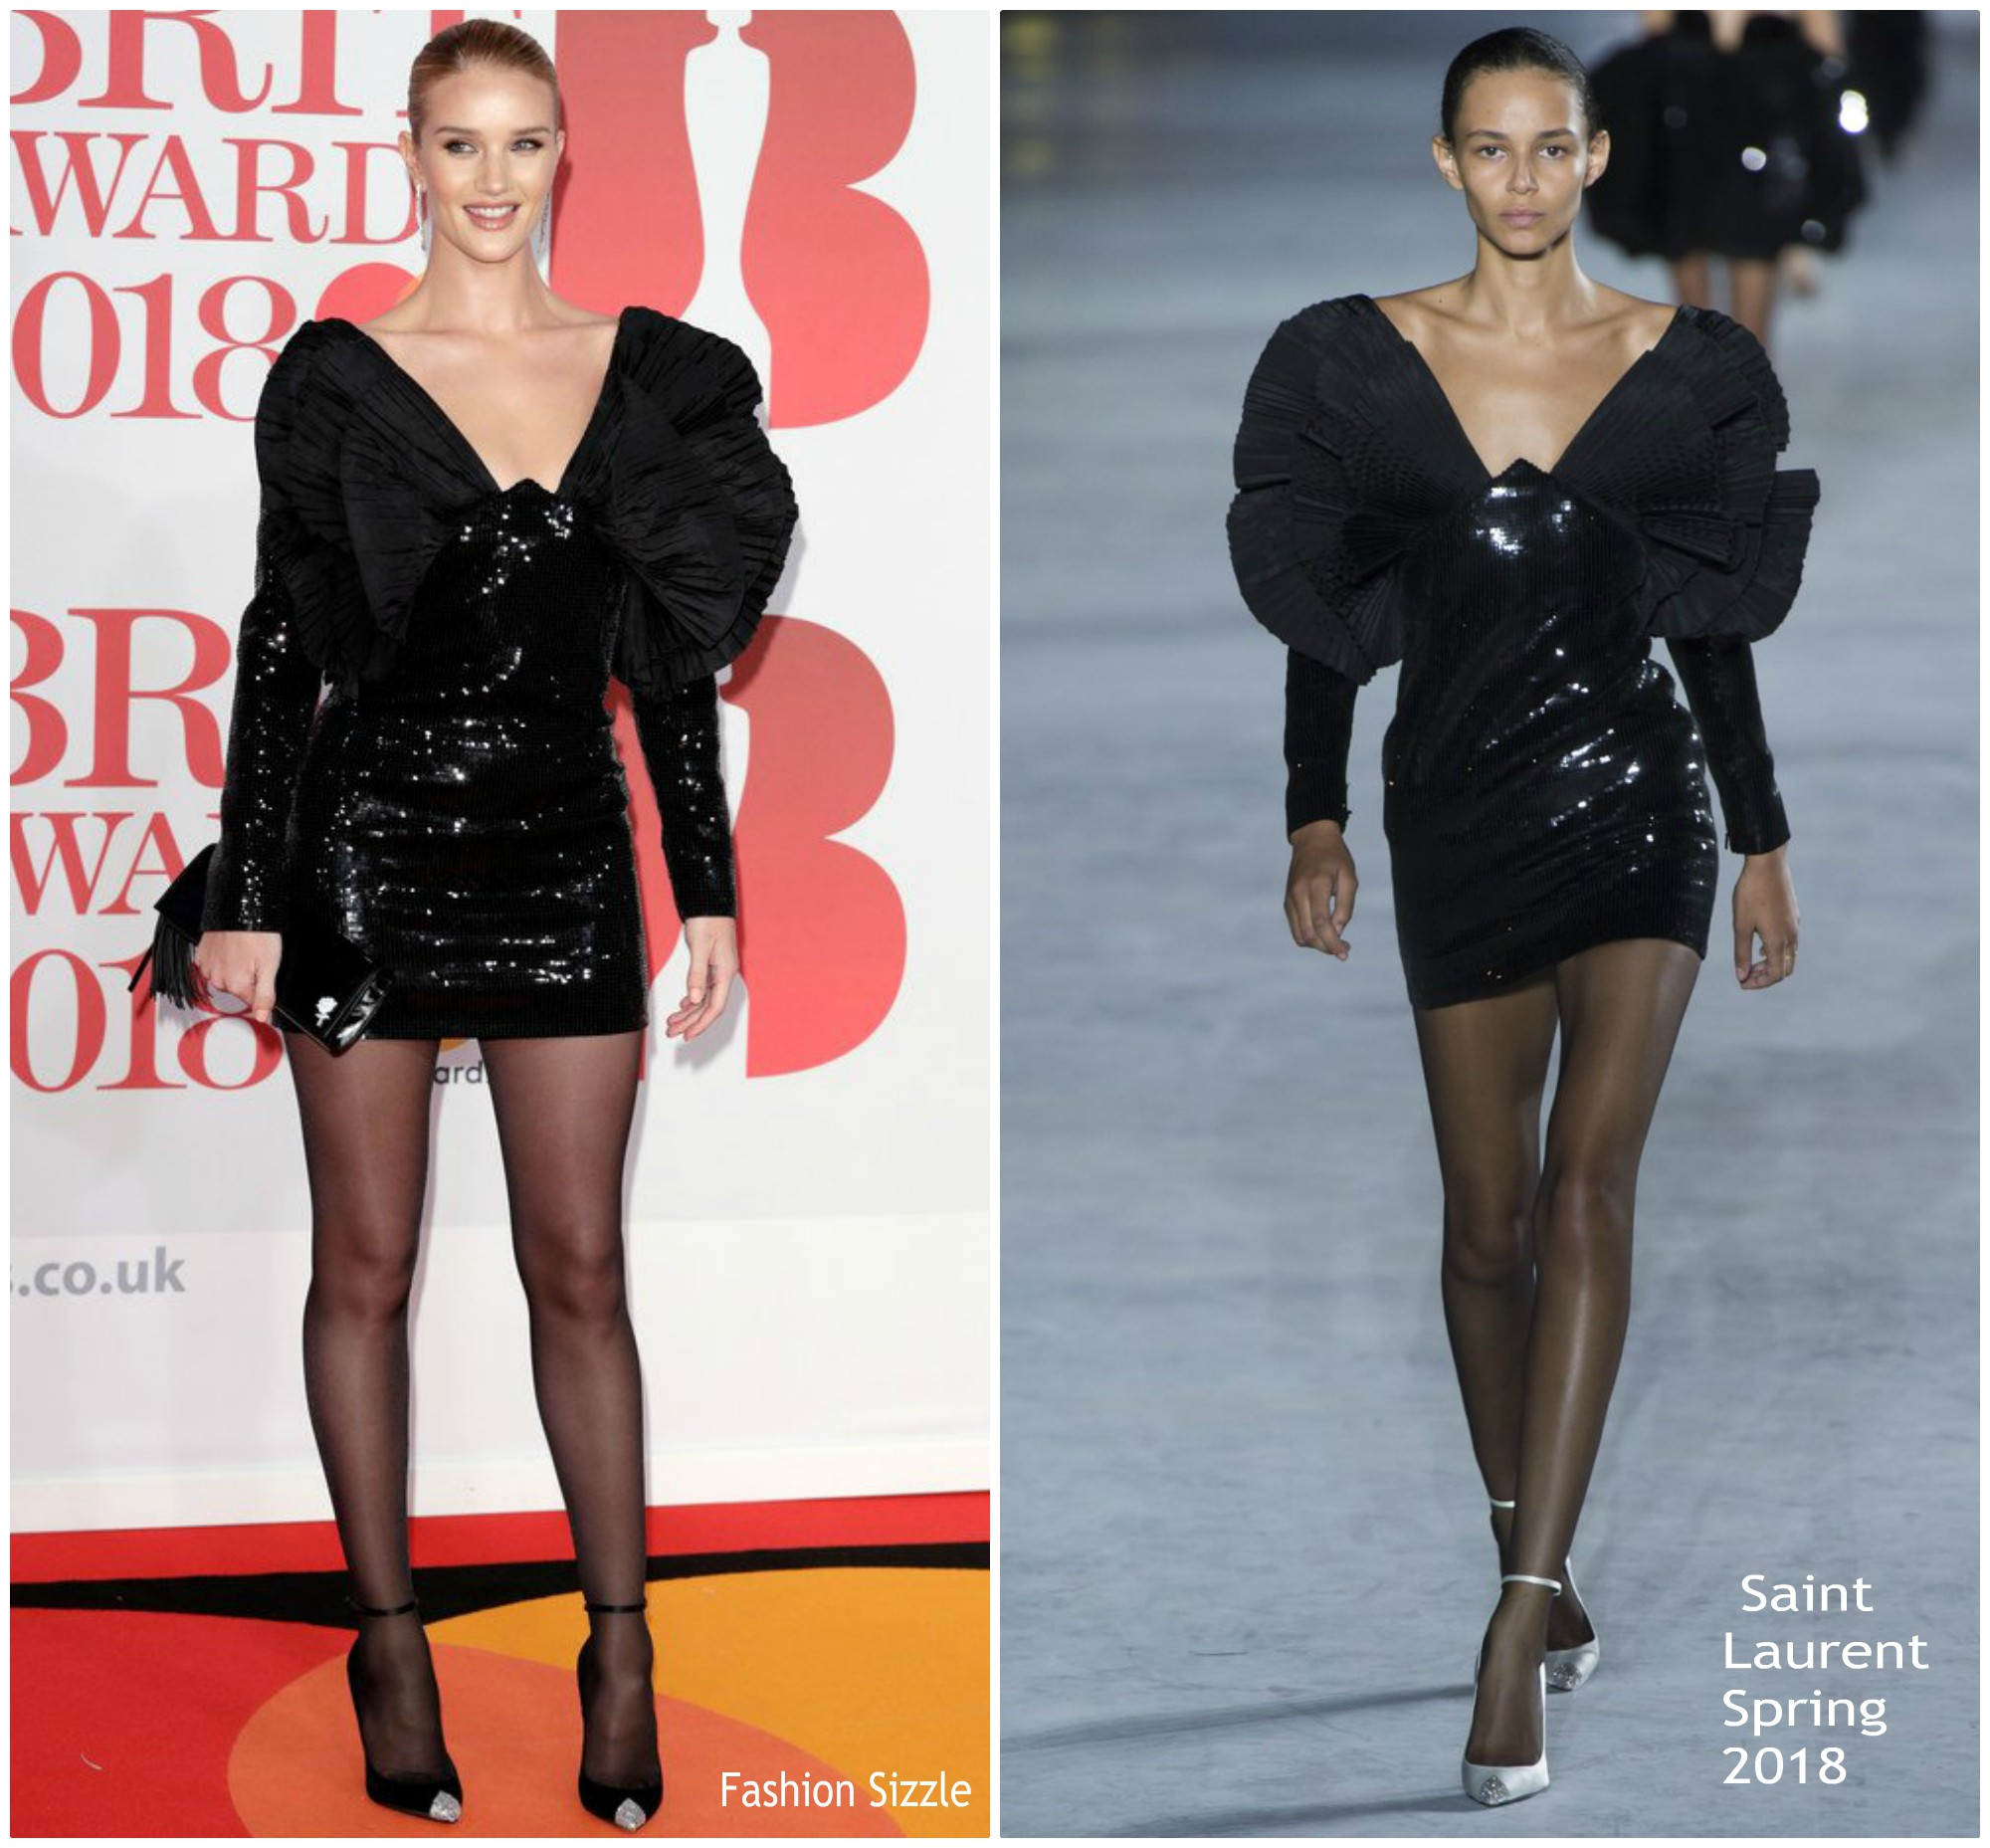 rosie-huntington-whiteley-in-saint-laurent-brit-awards-2018